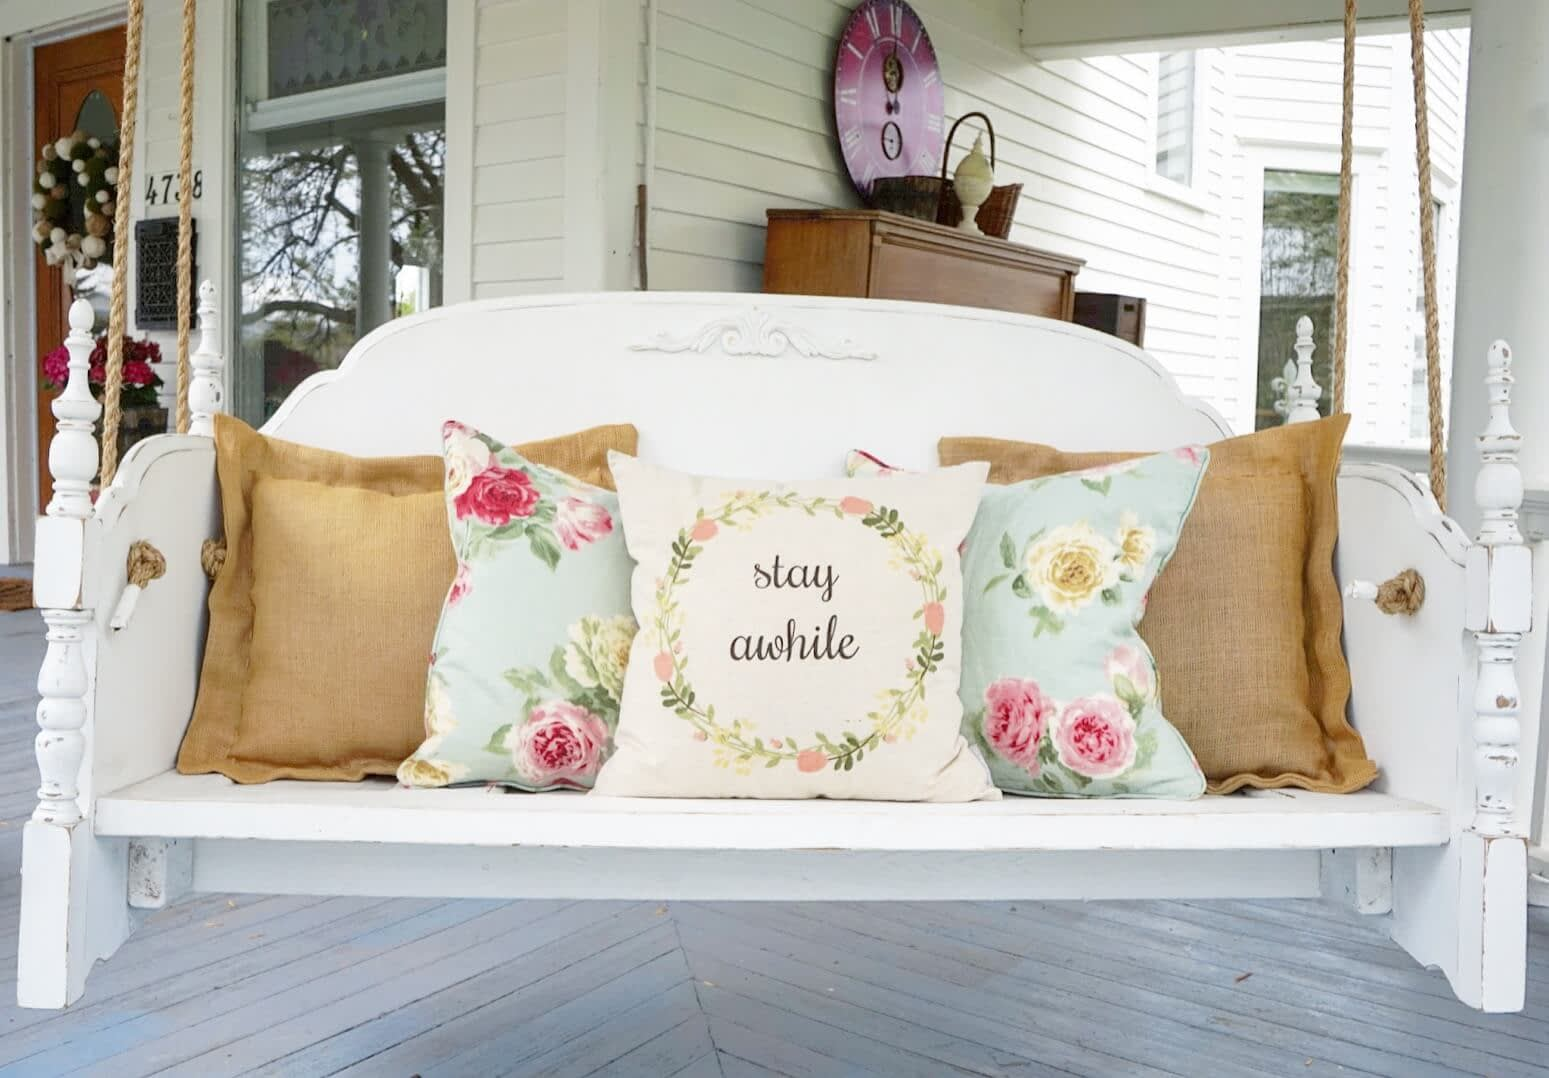 Front-View-Porch-Swing-Bed-Cushions